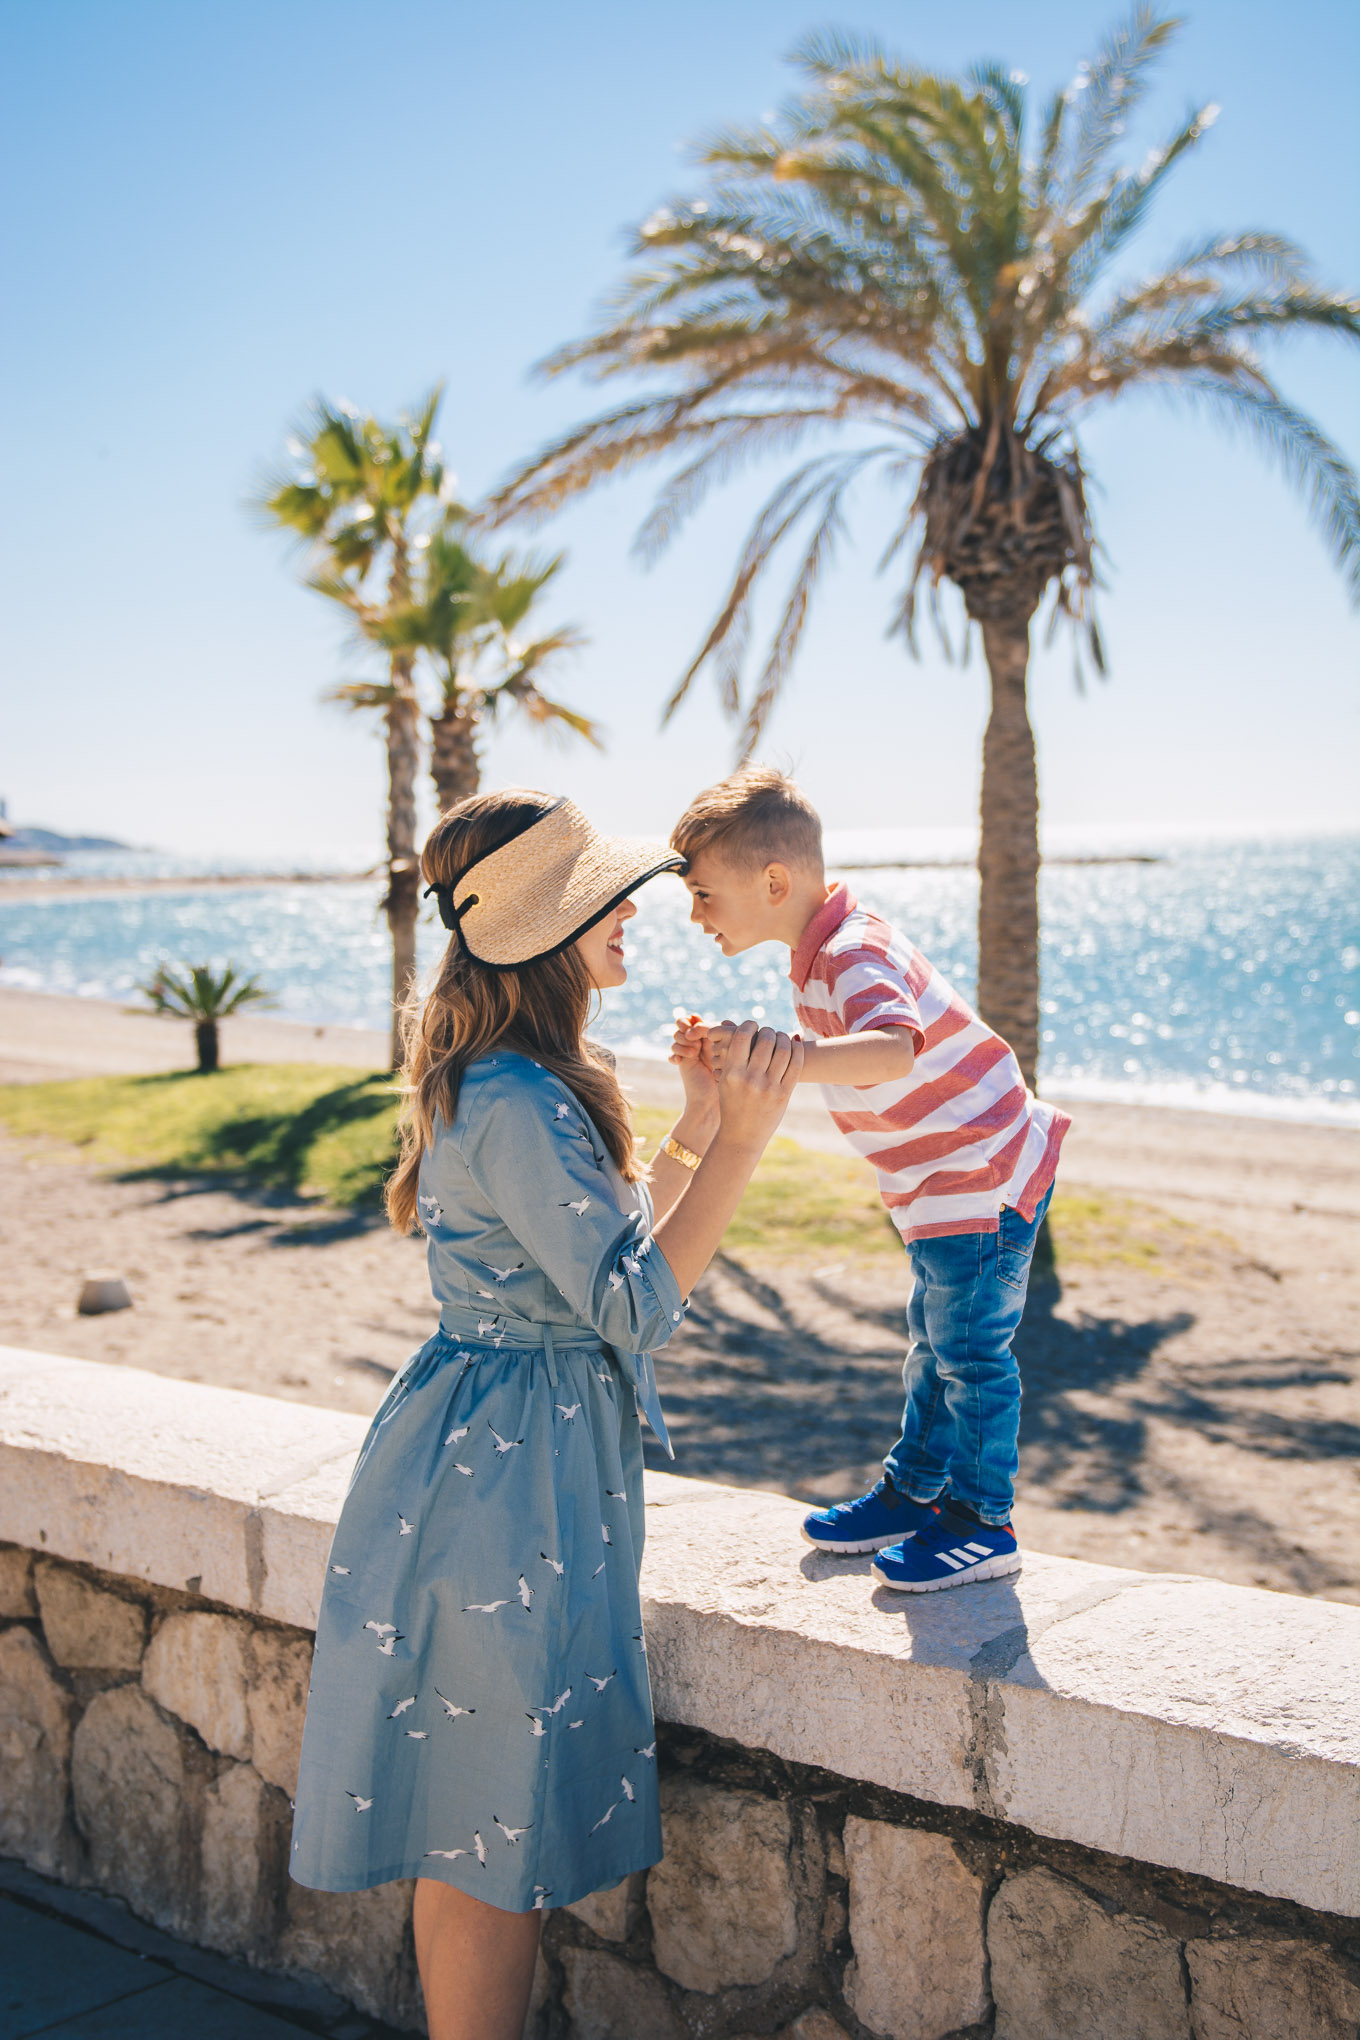 Mom and son in Malaga